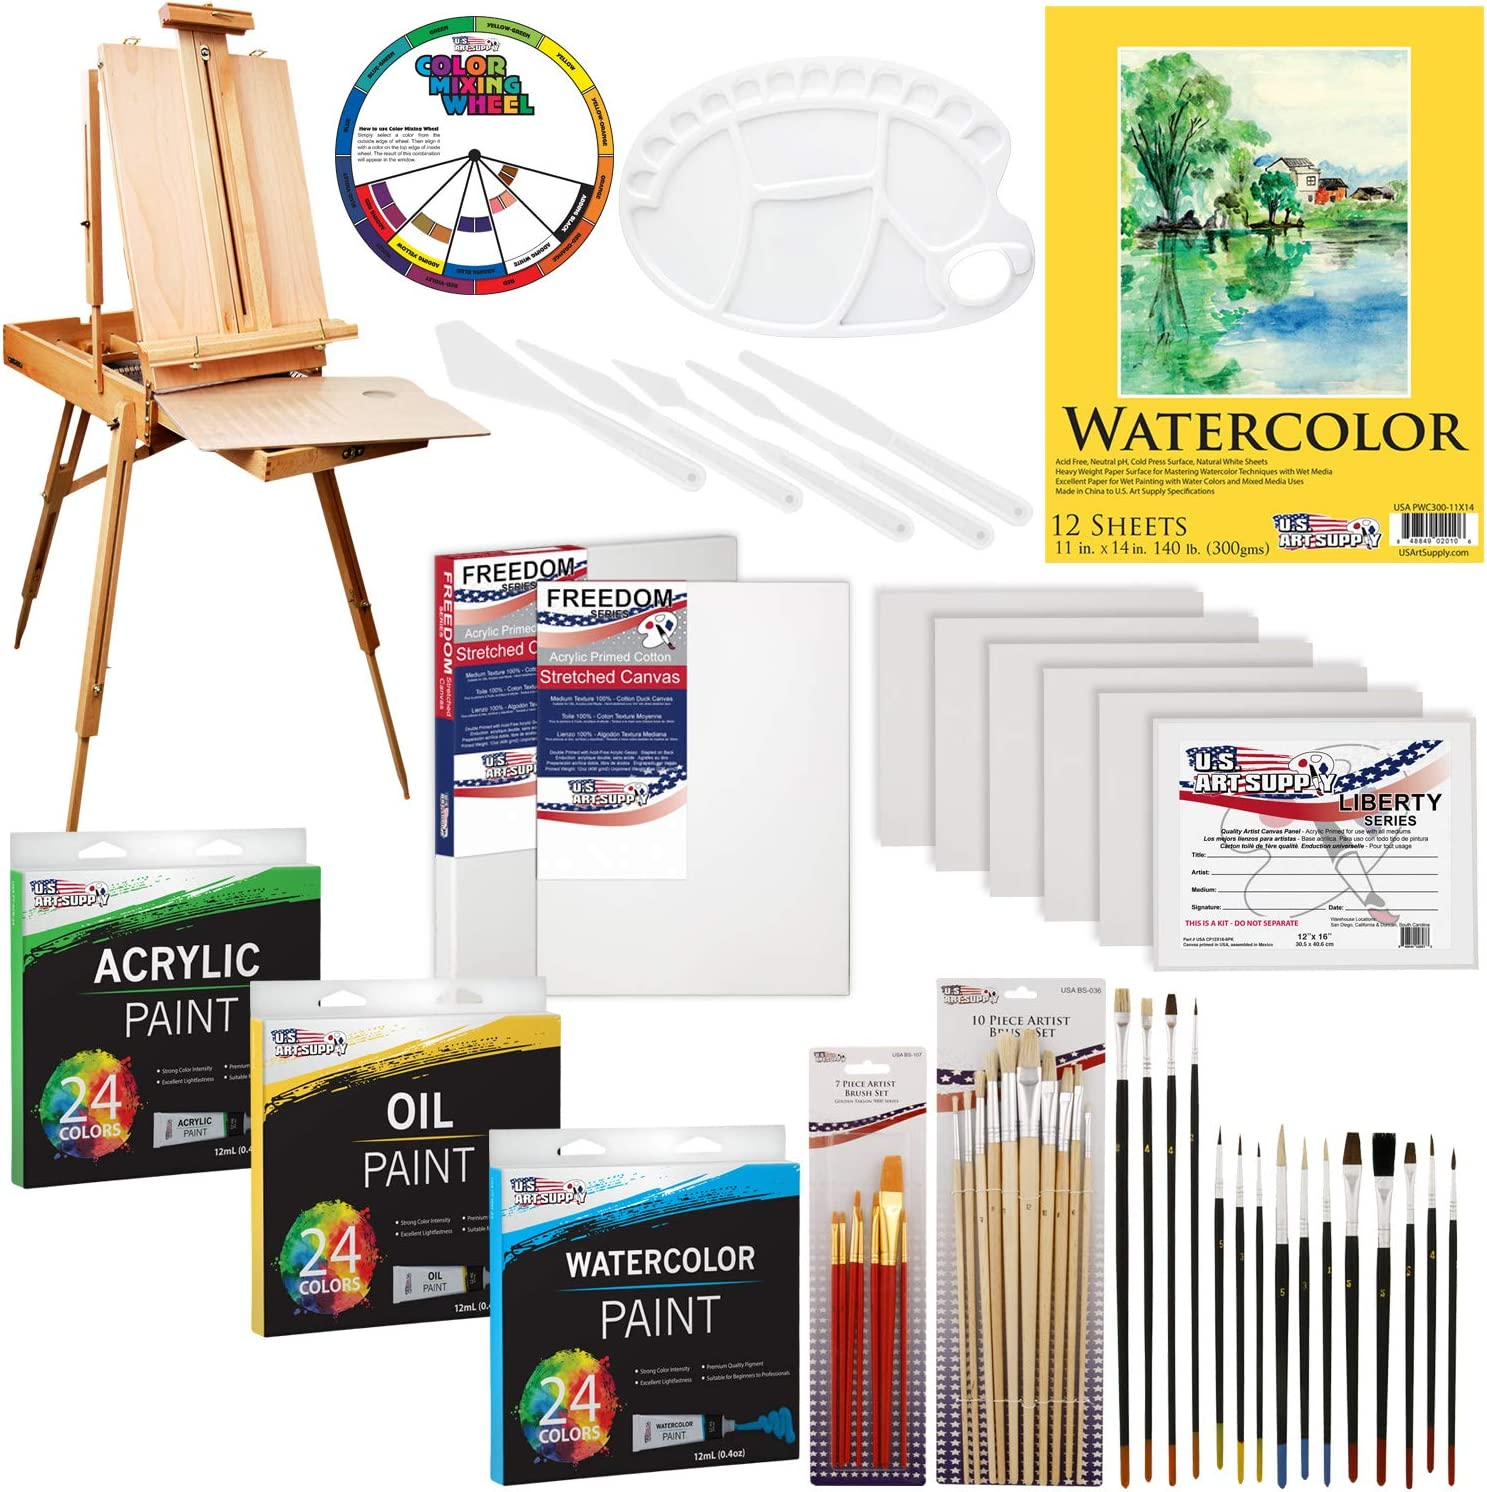 """US ART SUPPLY 121-Piece Custom Artist Painting Kit with Coronado Sonoma Easel, 24-Tubes Acrylic Colors, 24-Tubes Oil Painting Colors, 24-tubes Watercolor Painting Colors, 2-each 16""""x20"""" Artist Quality Stretched Canvases, 6-each 11""""x14"""" Canvas Panels, 11""""x14"""" Watercolor Paper Pad, 10-Natural Hair Bristle Paint Brushes, 7-Nyl"""